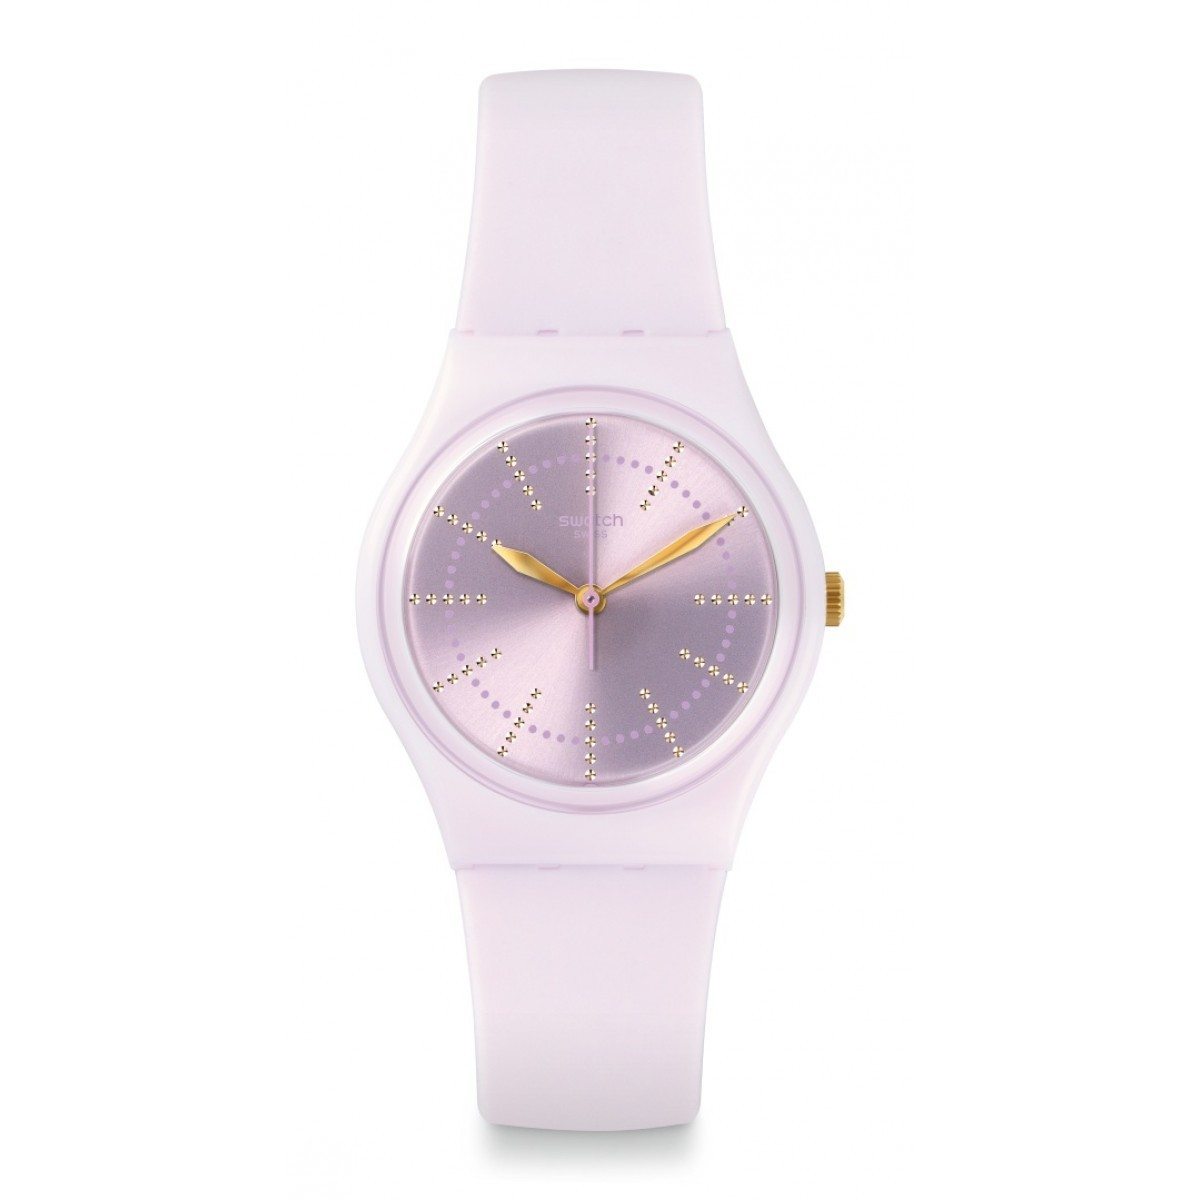 Genskie_chasy_Swatch (62)